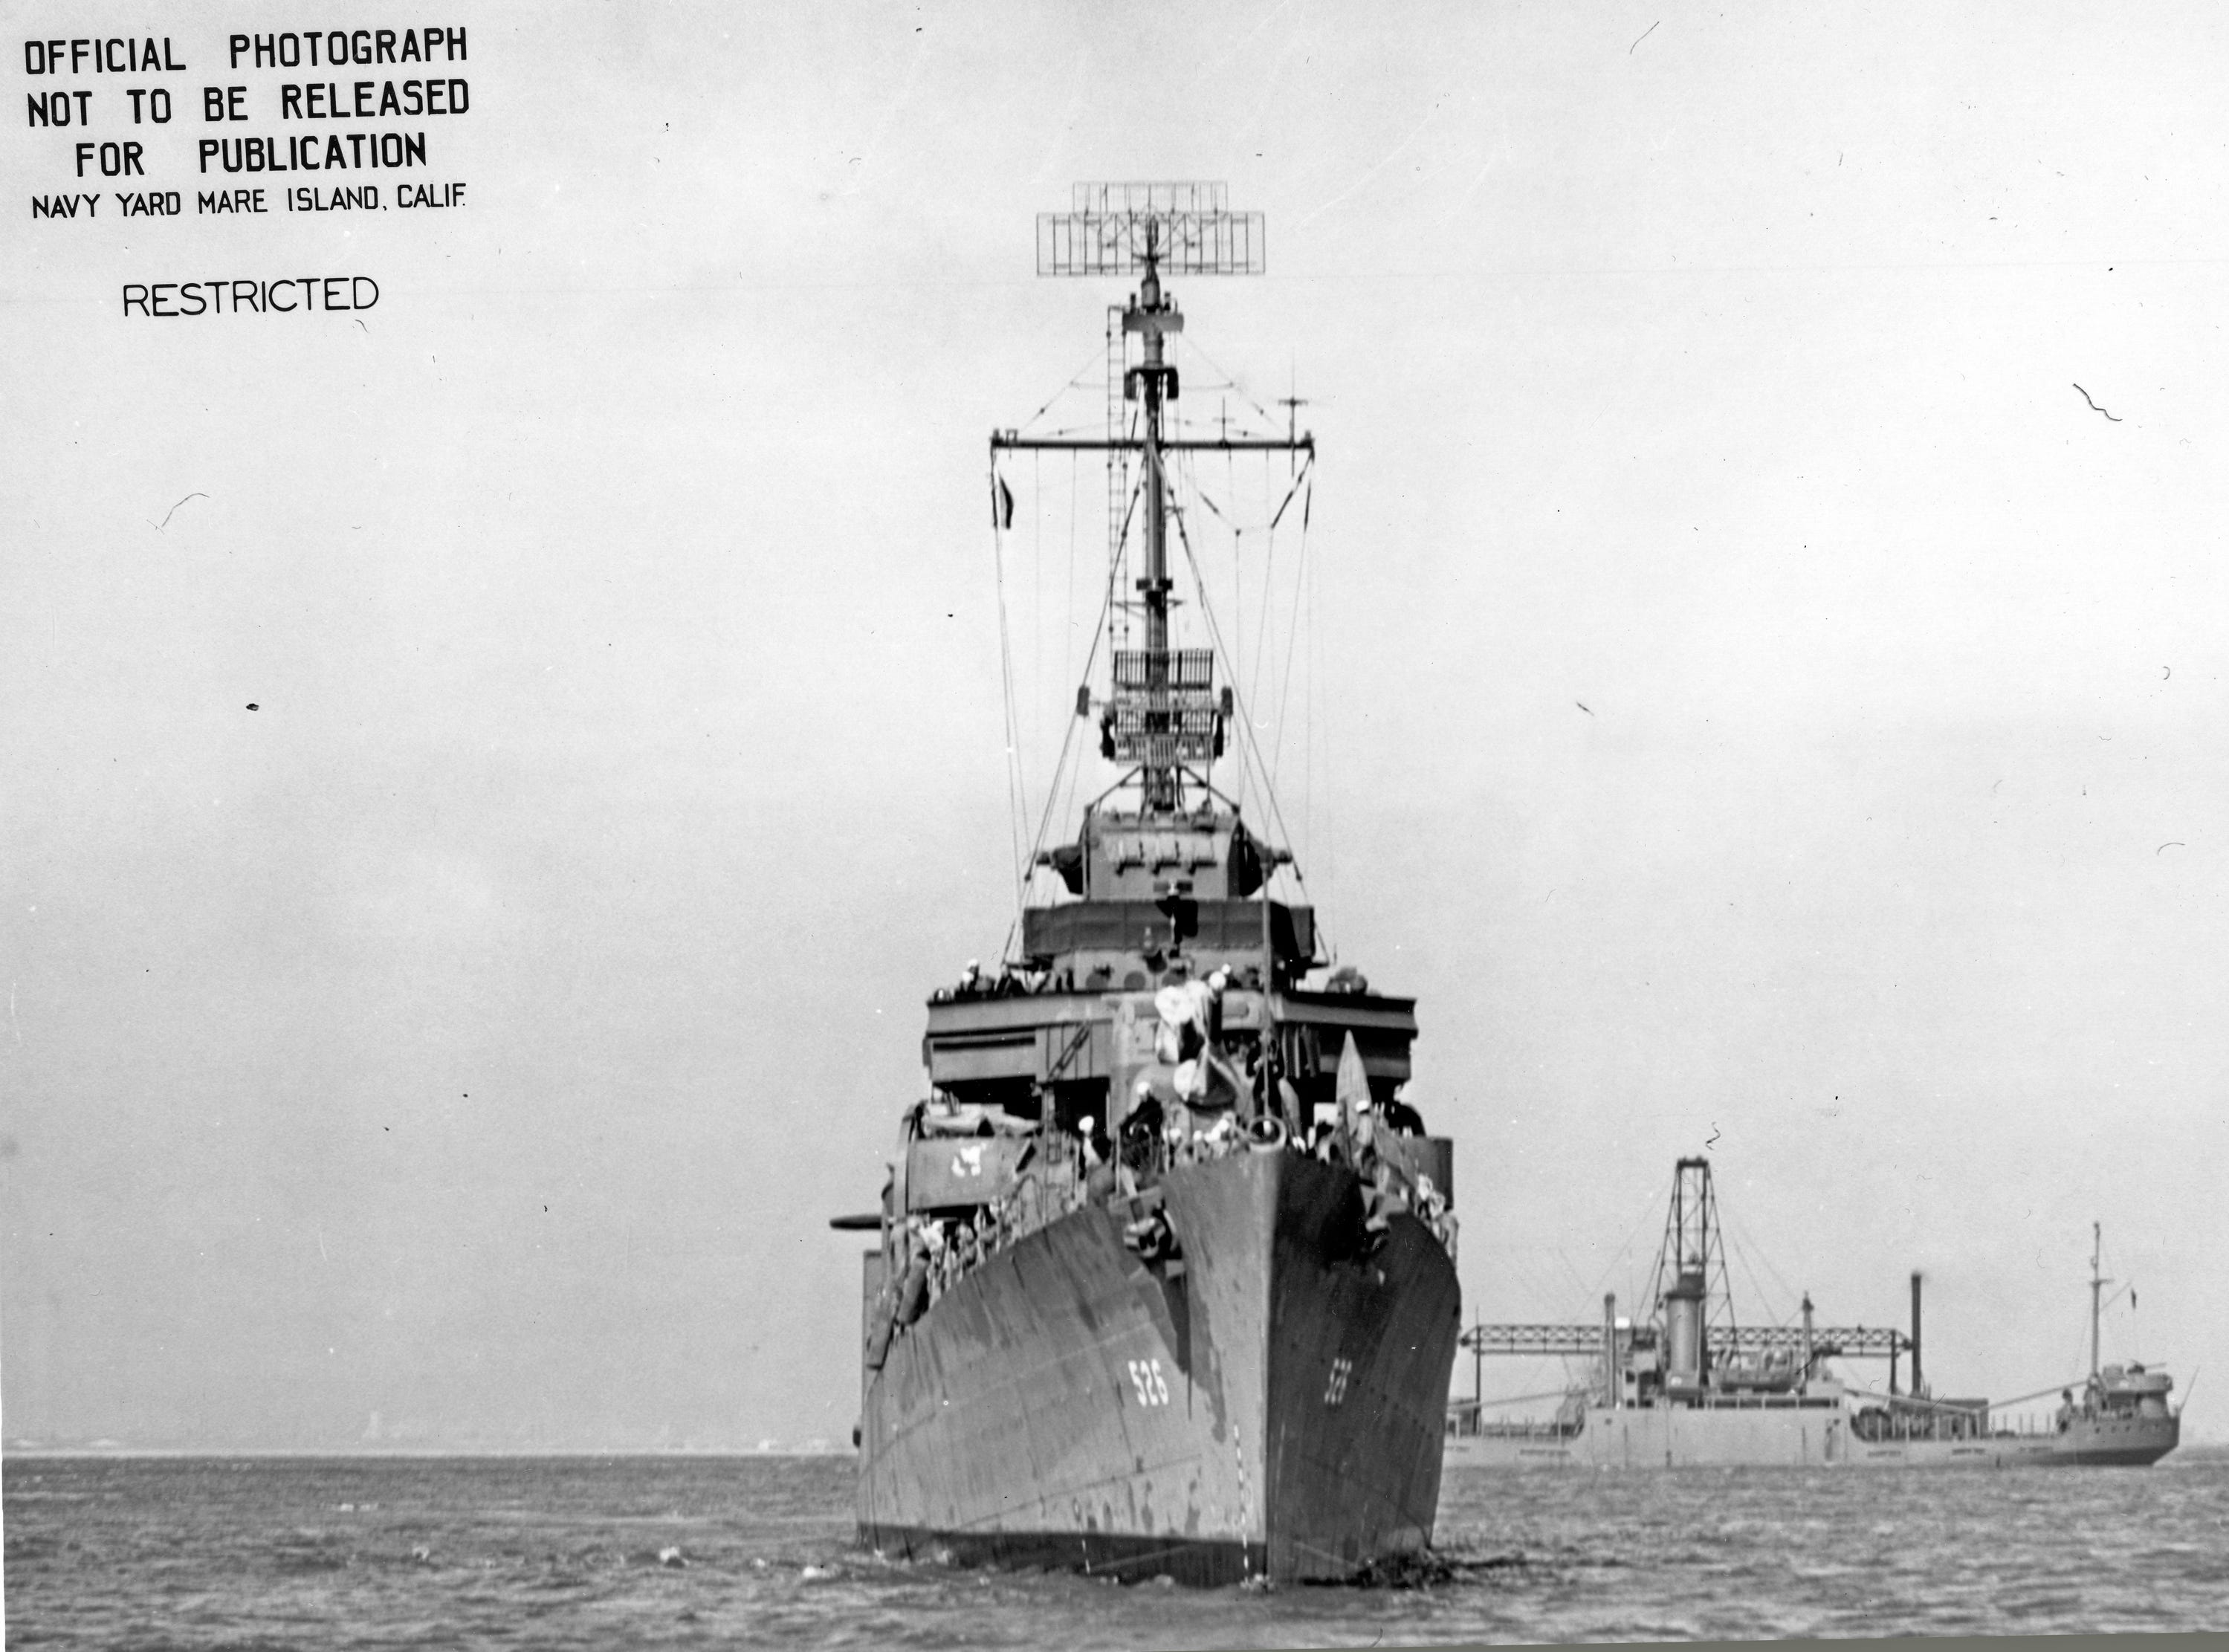 This undated U.S. Navy hoto, provided by the National Archives, shows the destroyer USS Abner Read at sea. The Abner Read hit a mine left by the Japanese after they abandoned Kiska Island in Alaska's Aleutian Islands in 1943, ripping the stern off. But the ship never sank and was refitted and returned to duty. Now, 75 years after the ship's stern broke off, it has been located off Kiska by a team of scientists funded by the U.S. government. (U.S. Navy/National Archives via AP)